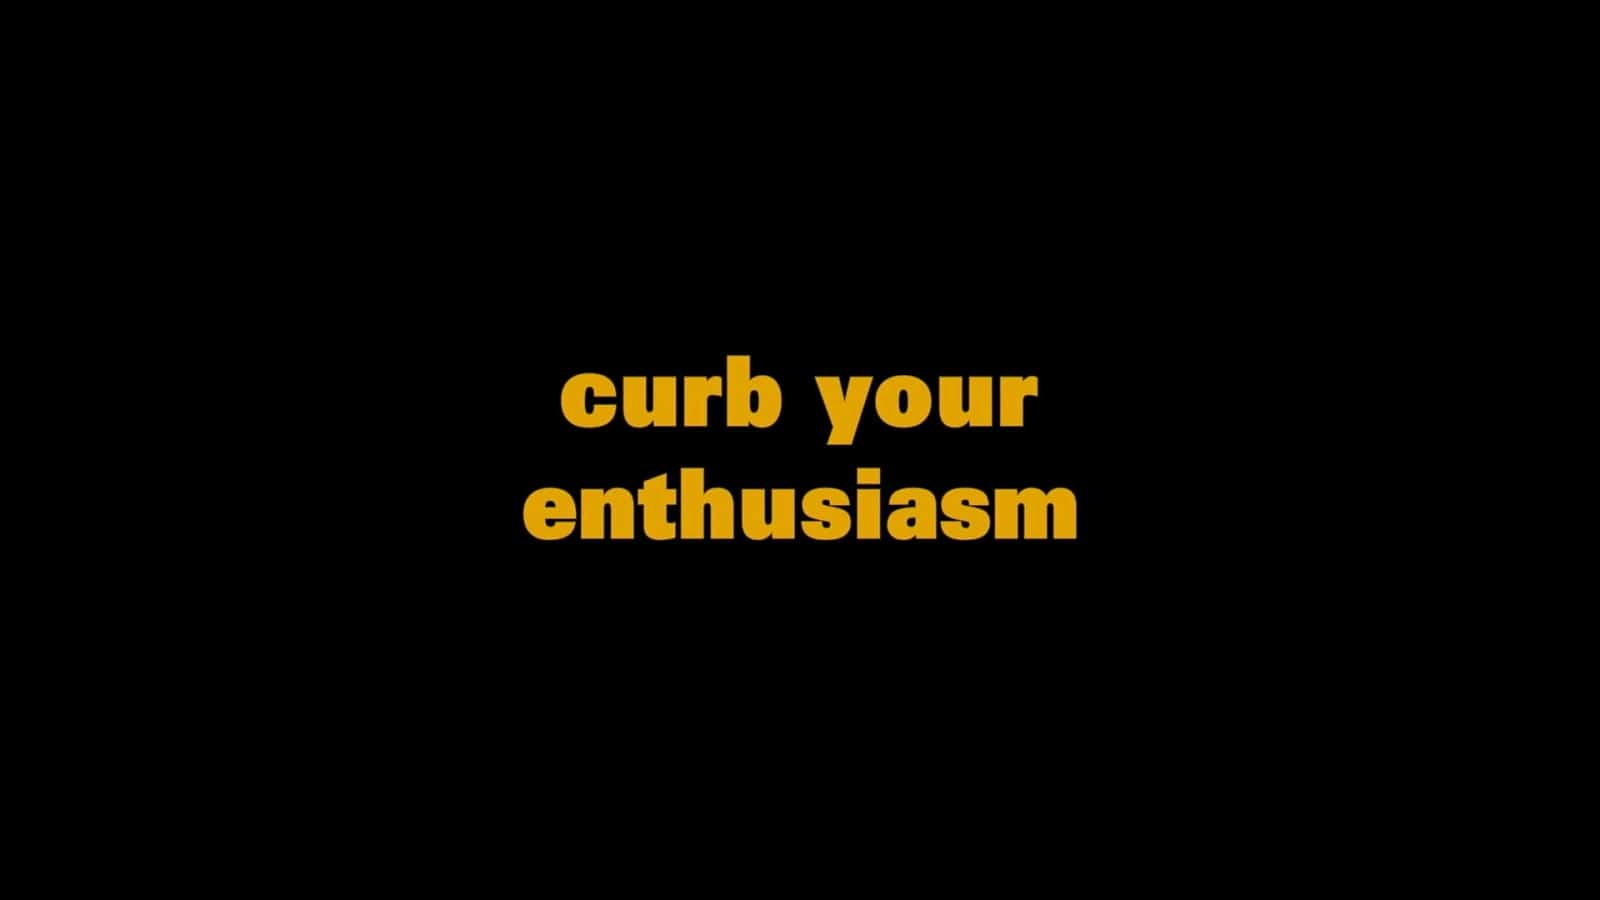 Movie Opening Credits - Curb Your Enthusiasm Title Sequence